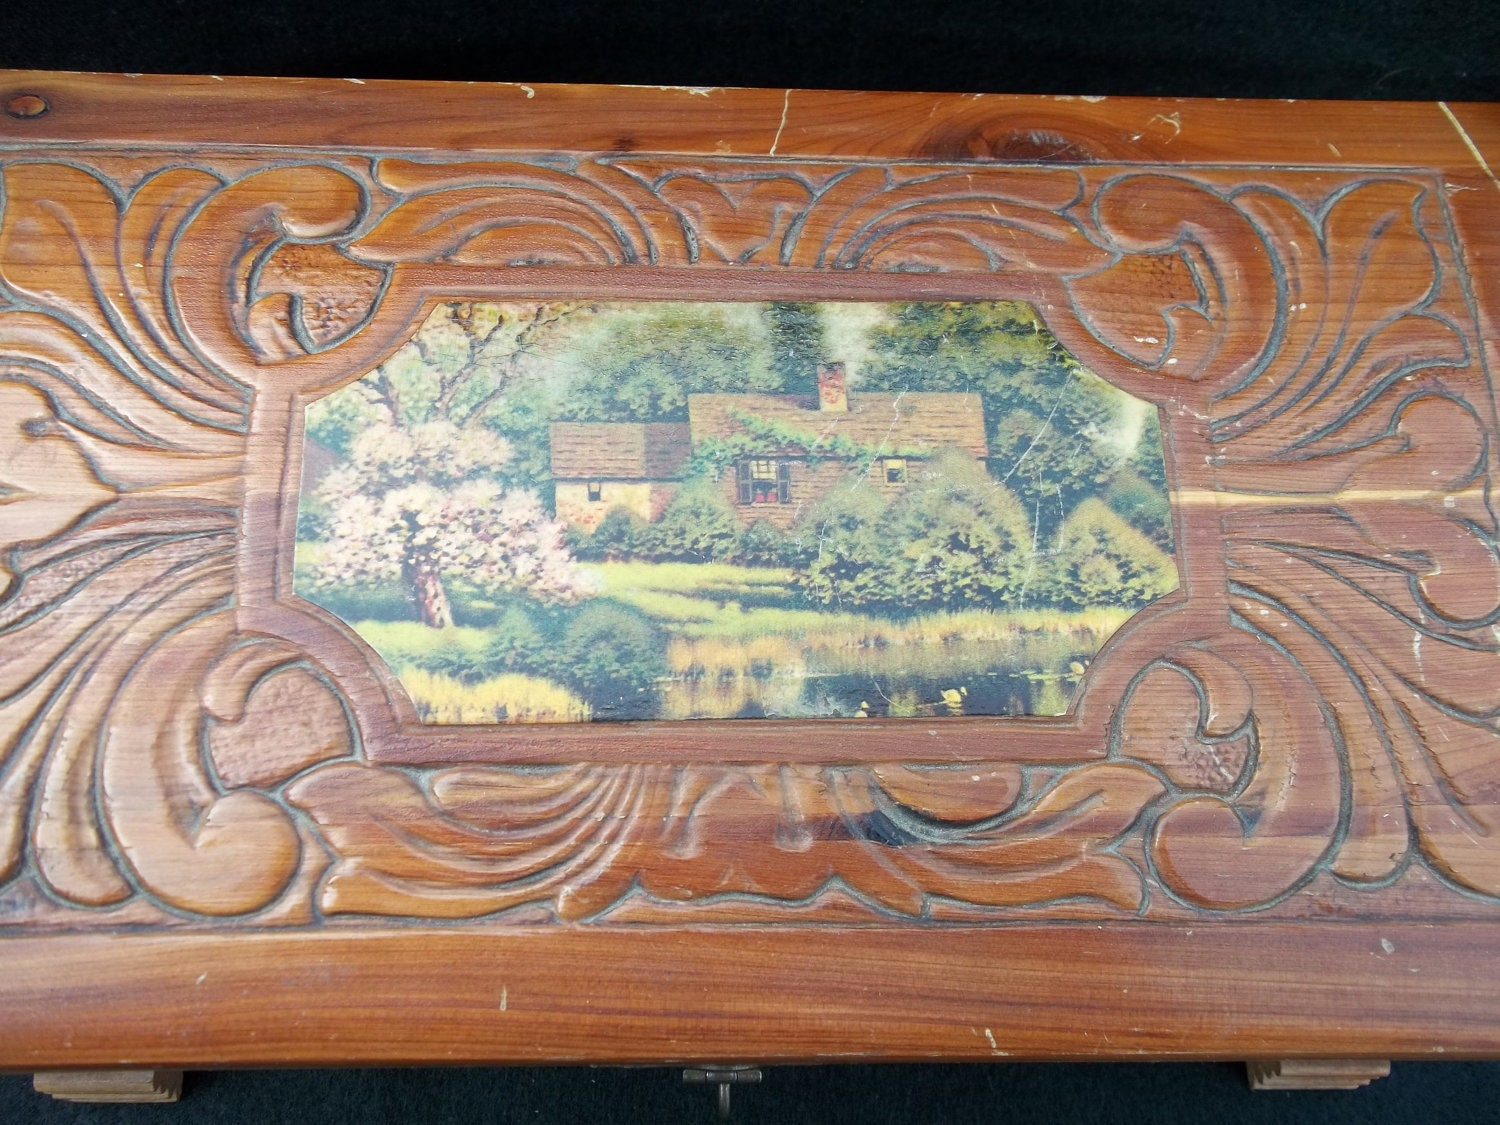 Antique Carved Wooden Box With Mirror Inside And Landscape